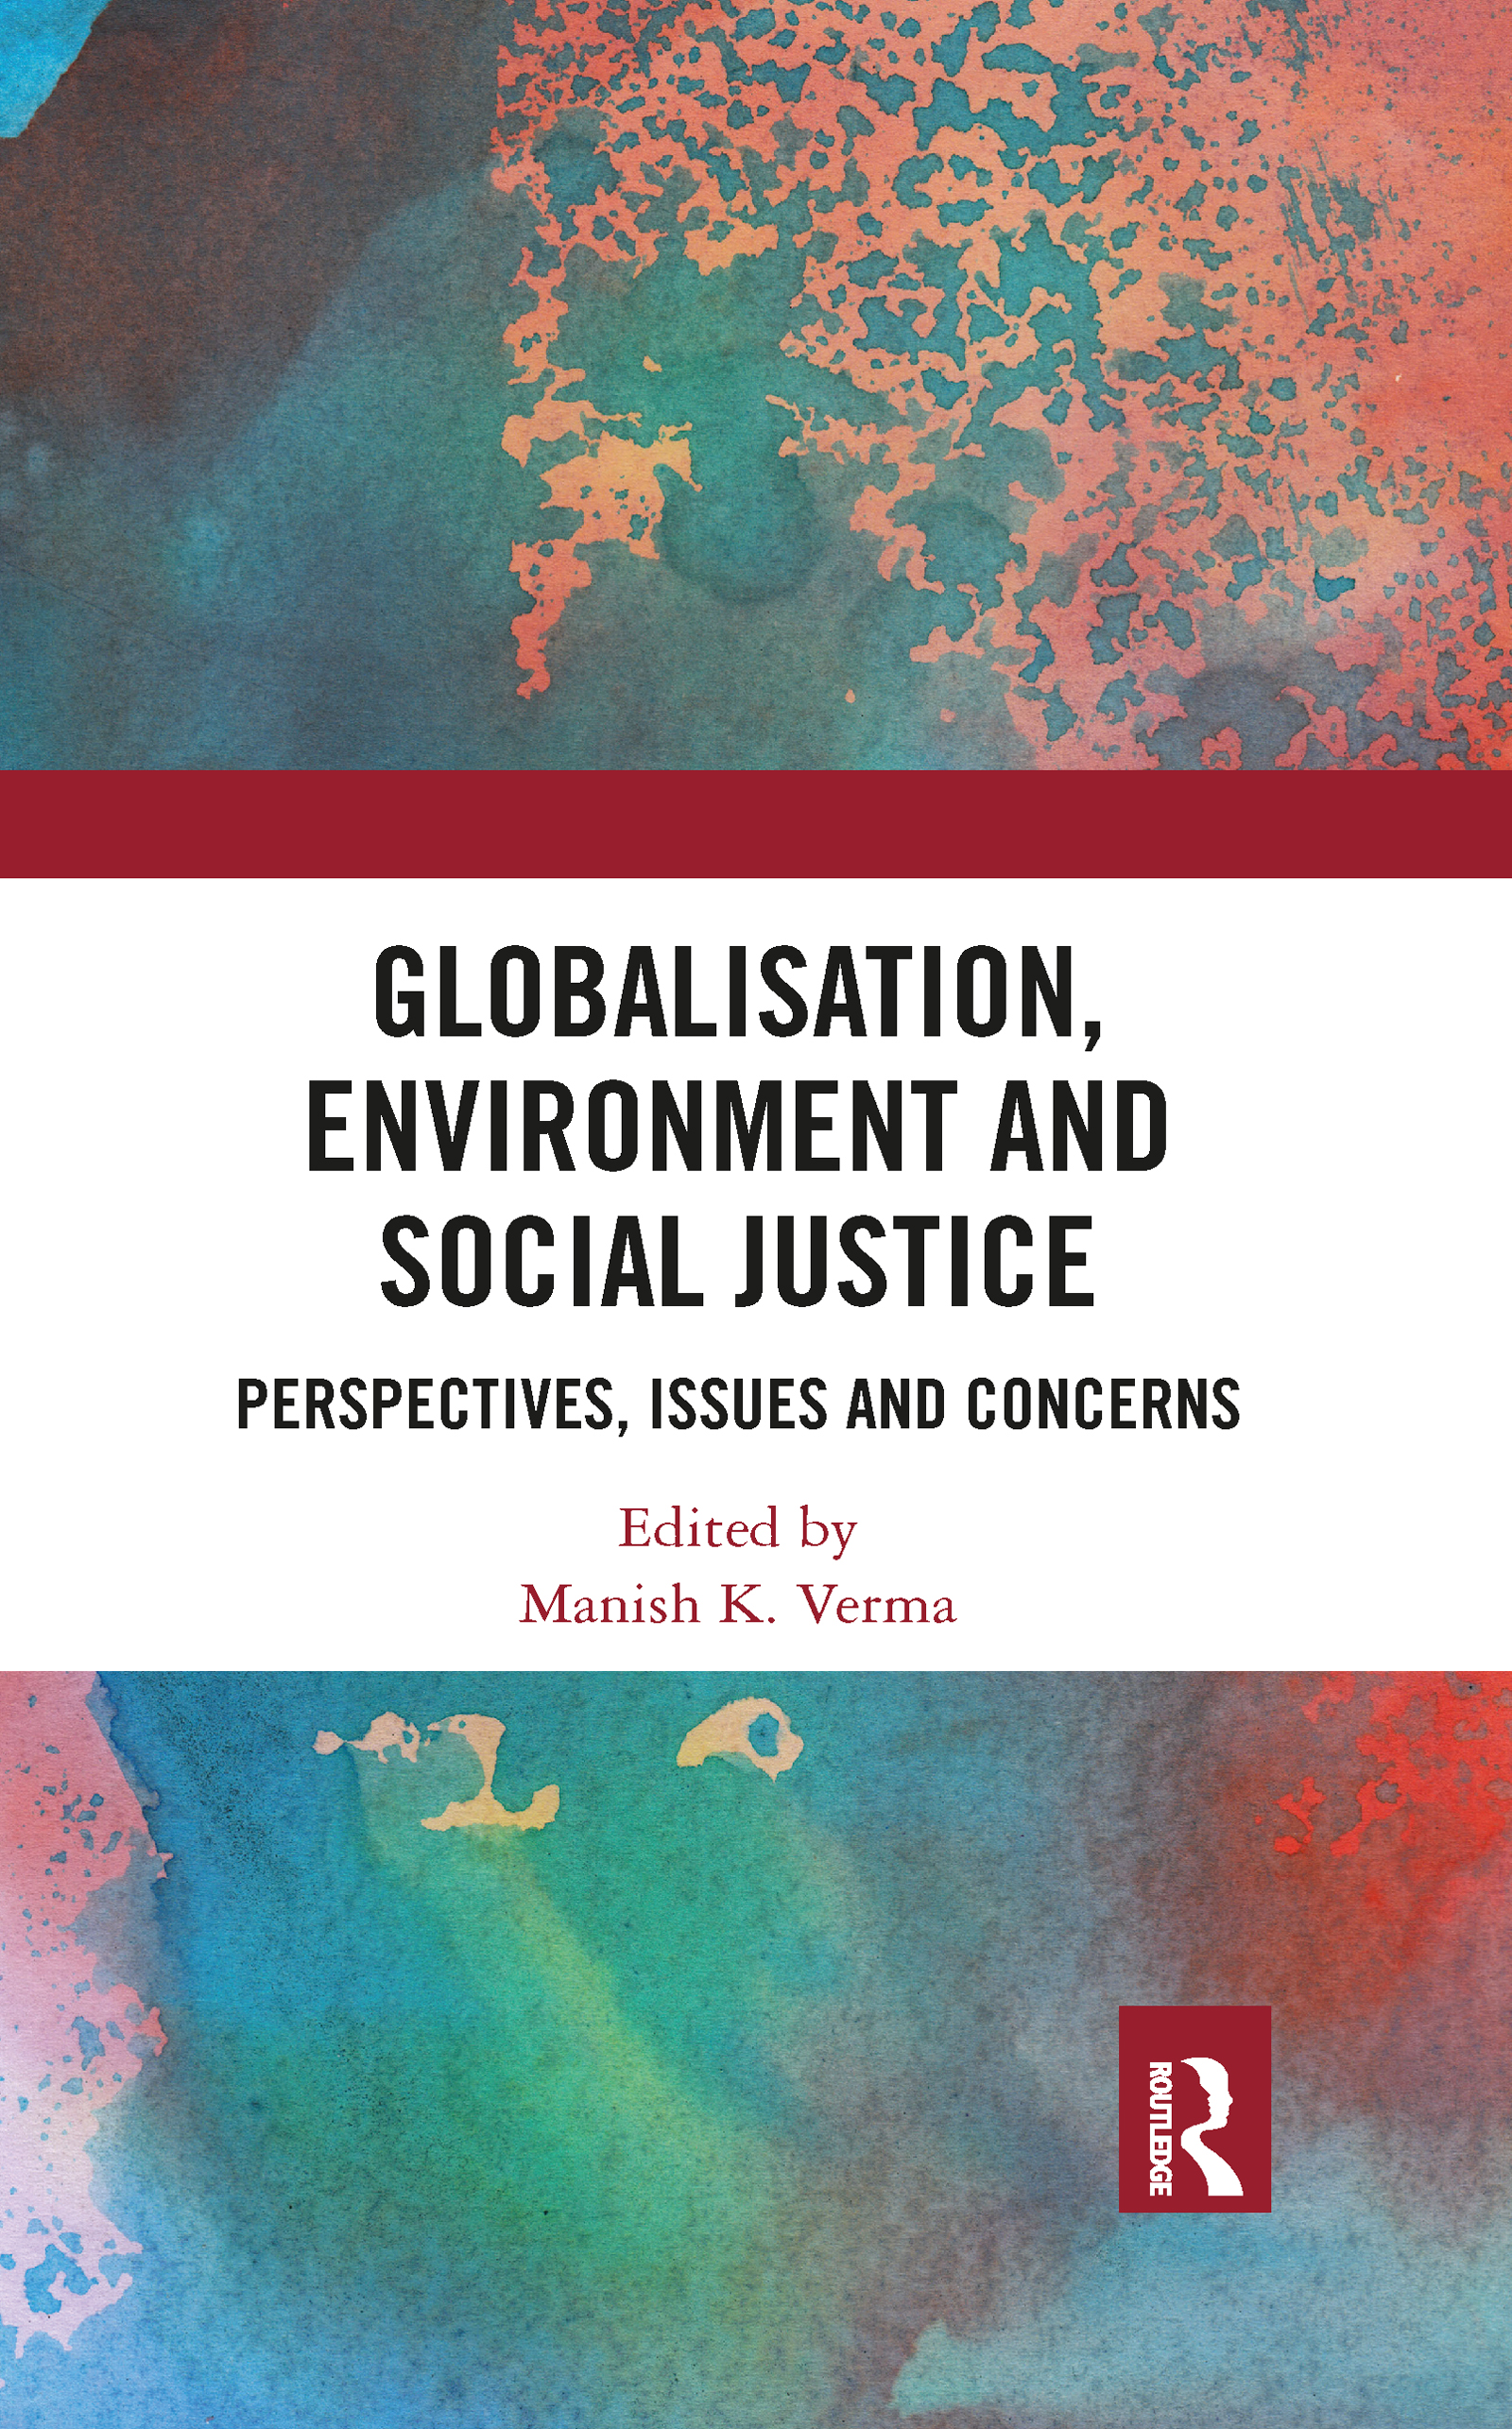 Globalisation, Environment and Social Justice